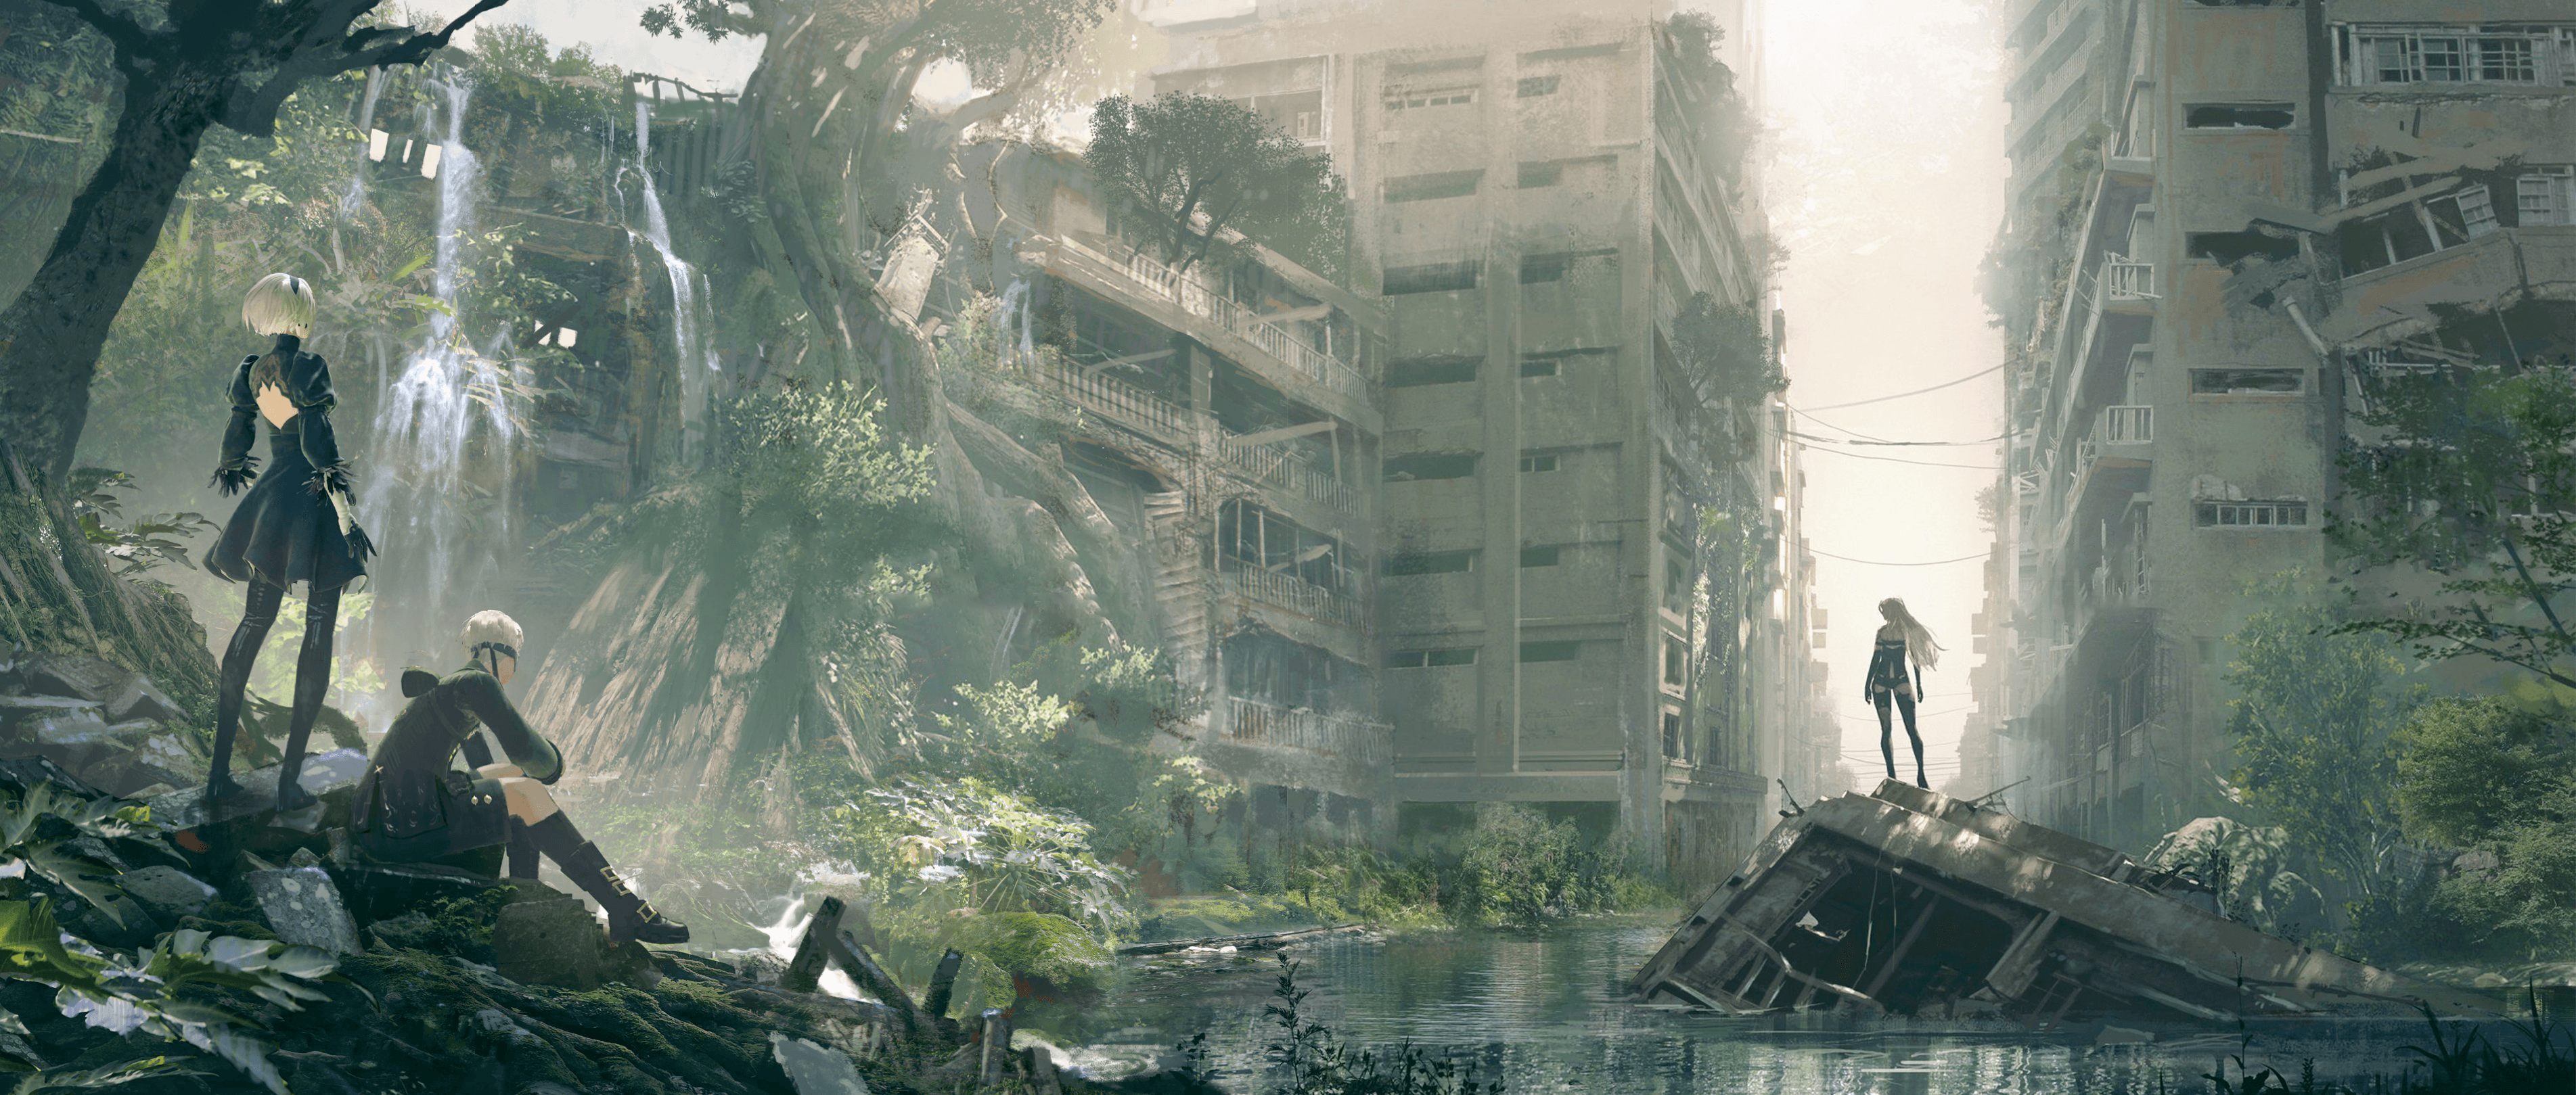 Nier Automata: Become As Gods Edition Wallpapers ...